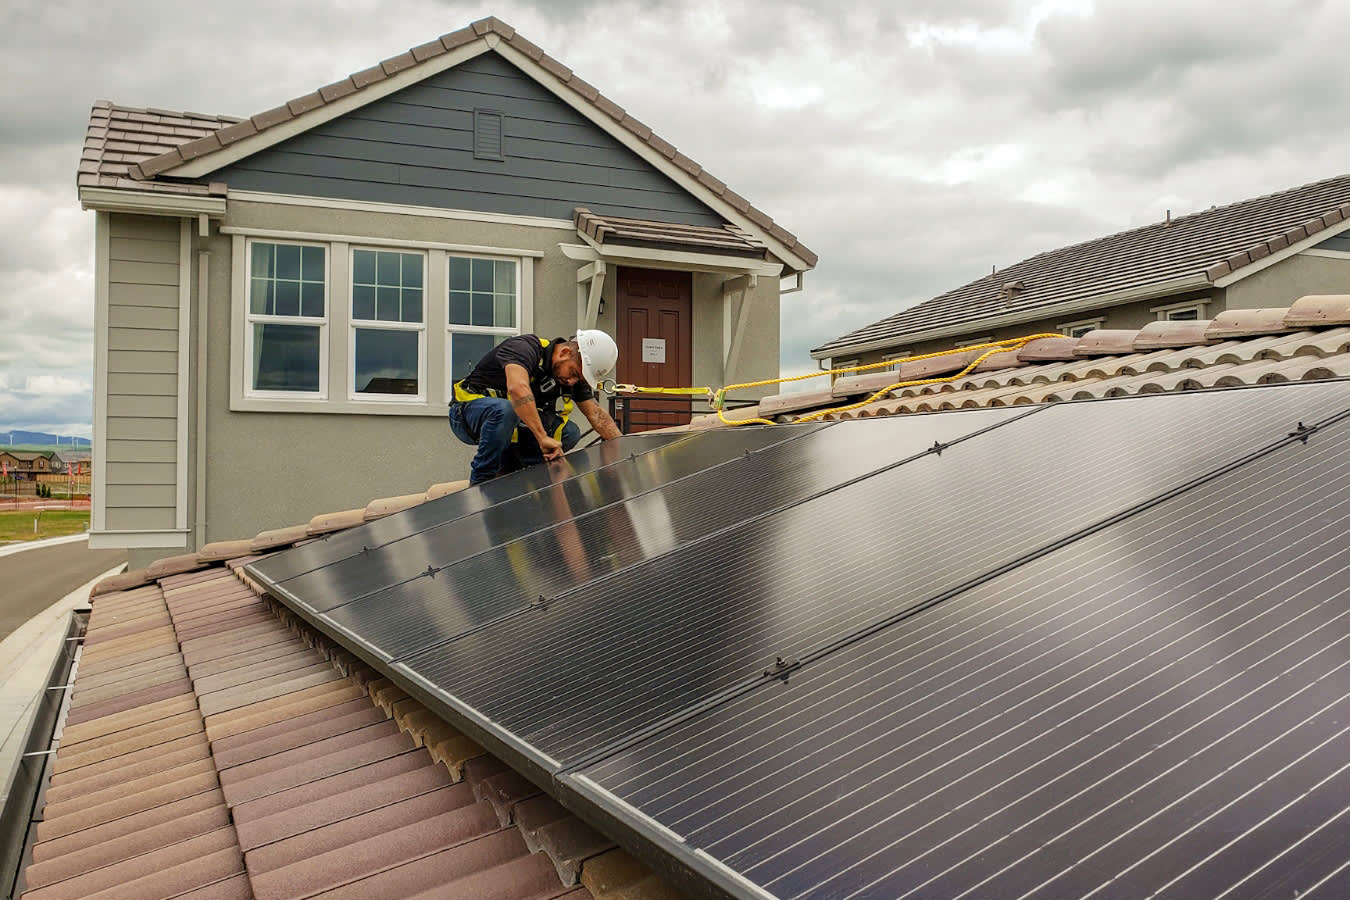 After being rocked by Trump tariffs, the solar energy business is